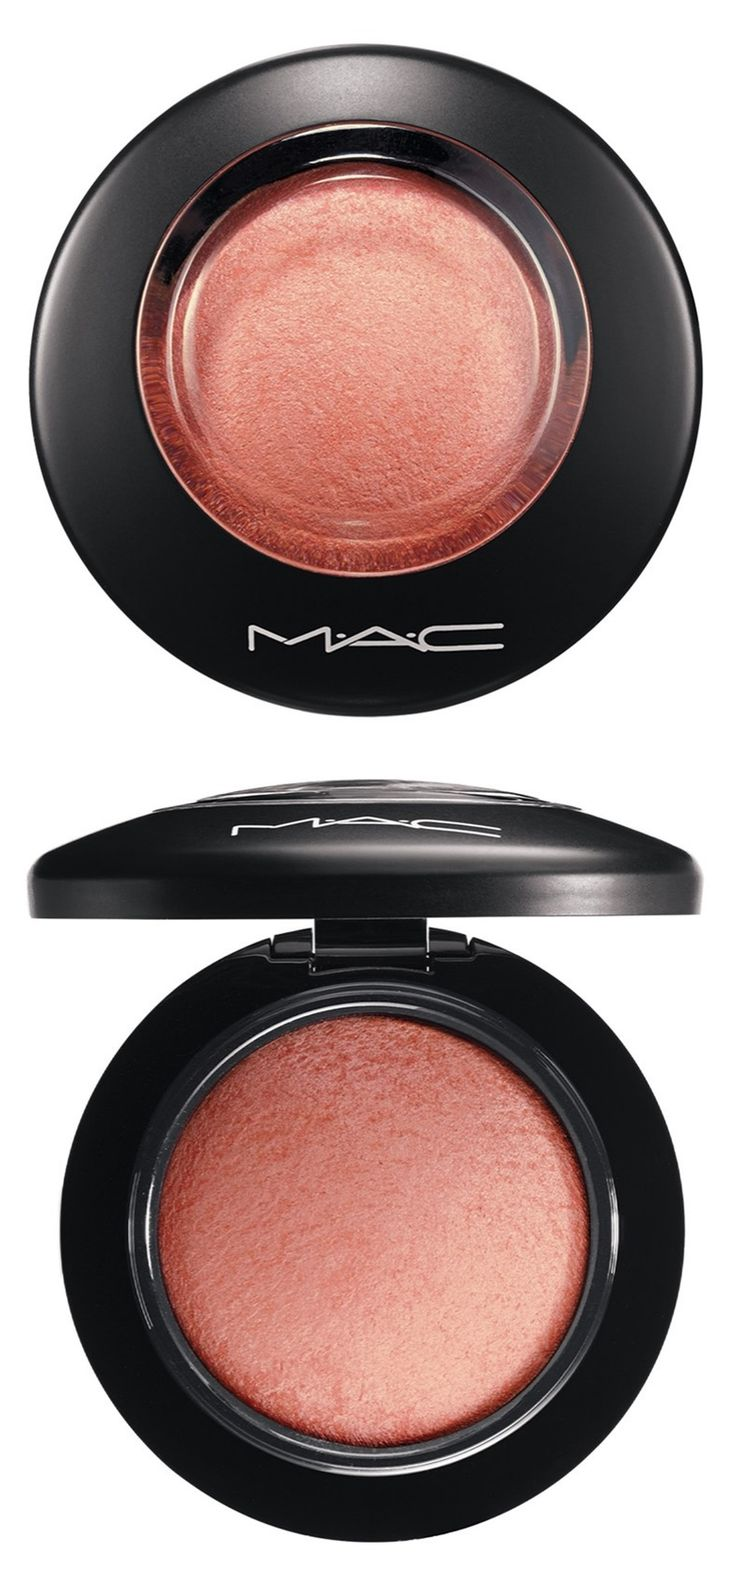 Using this coral MAC blush to enhance cheekbones with luminous, pearlized shimmer.